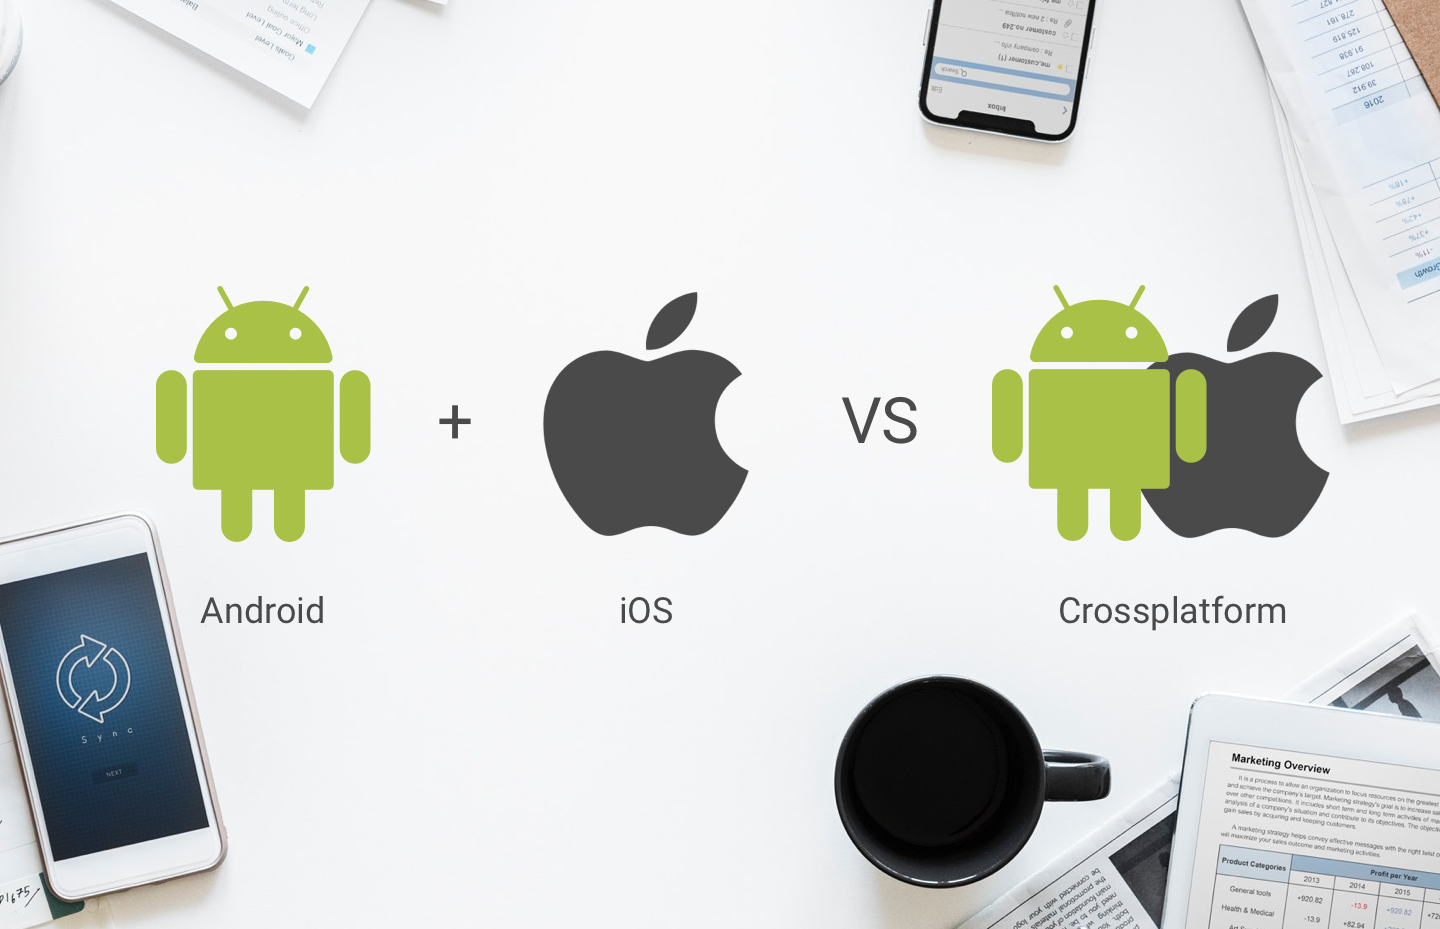 android_ios_vs_crossplatform.png